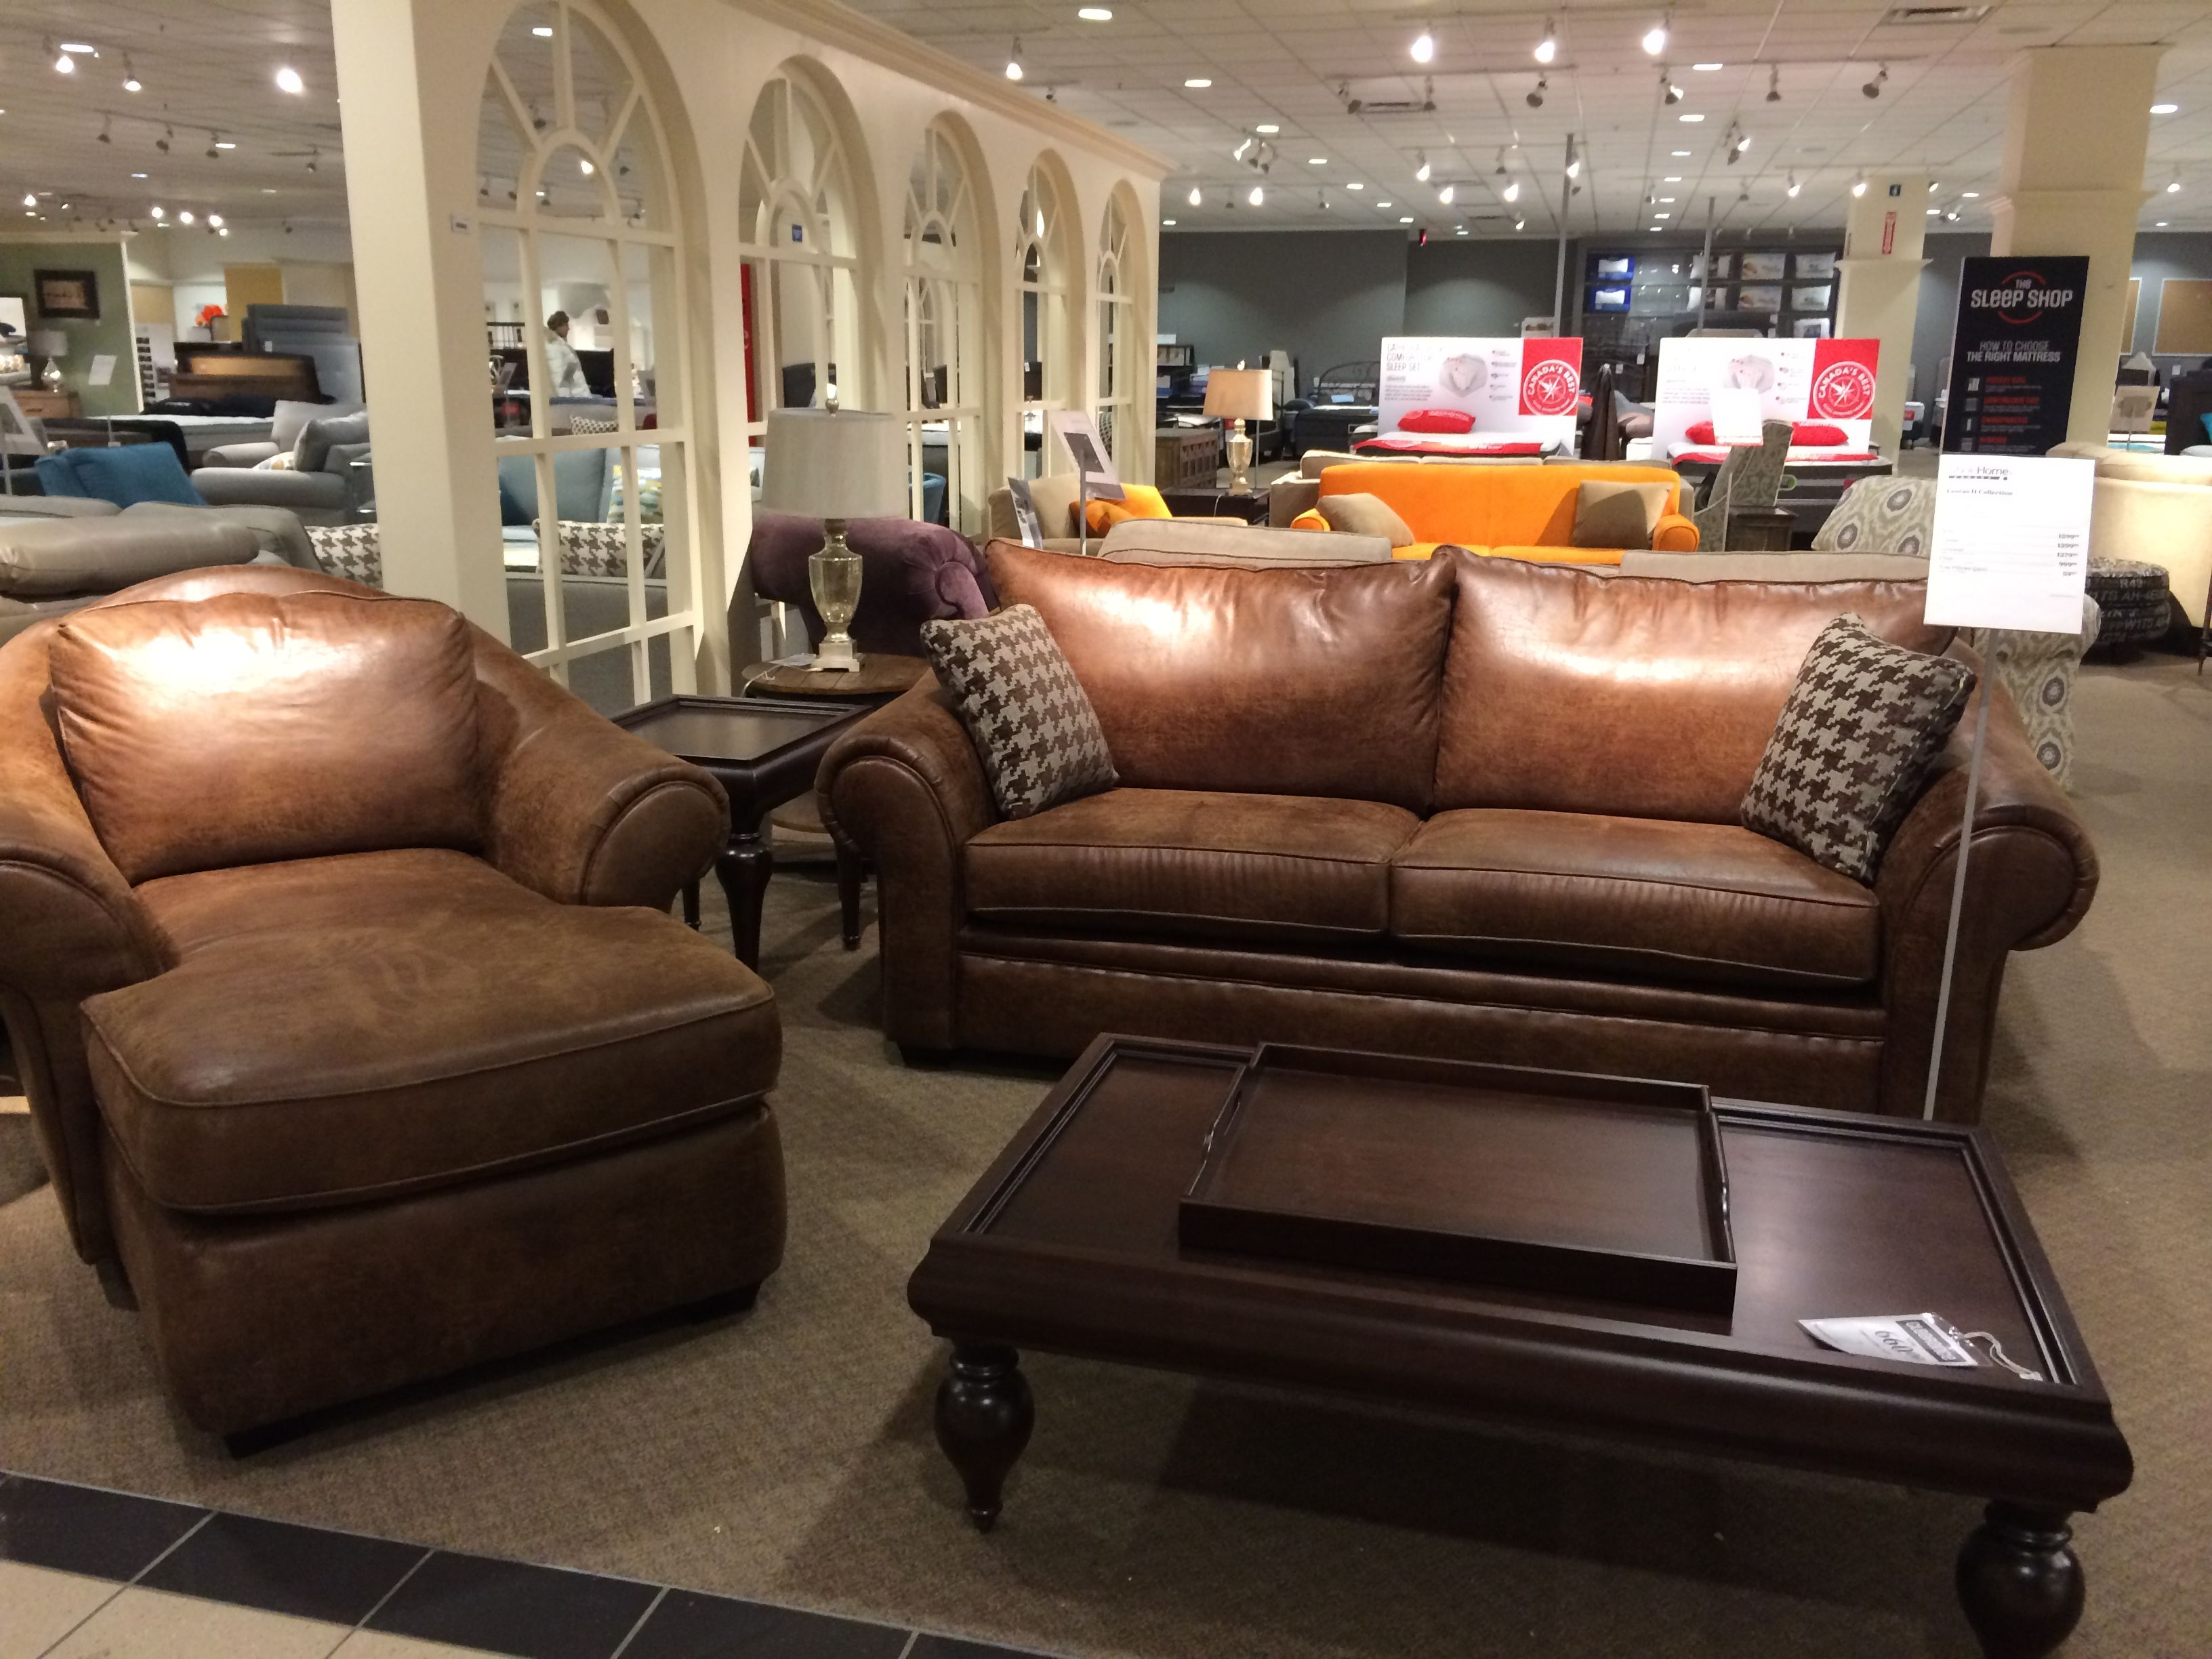 Restoration Hardware in store display. The leather couch and chair ...